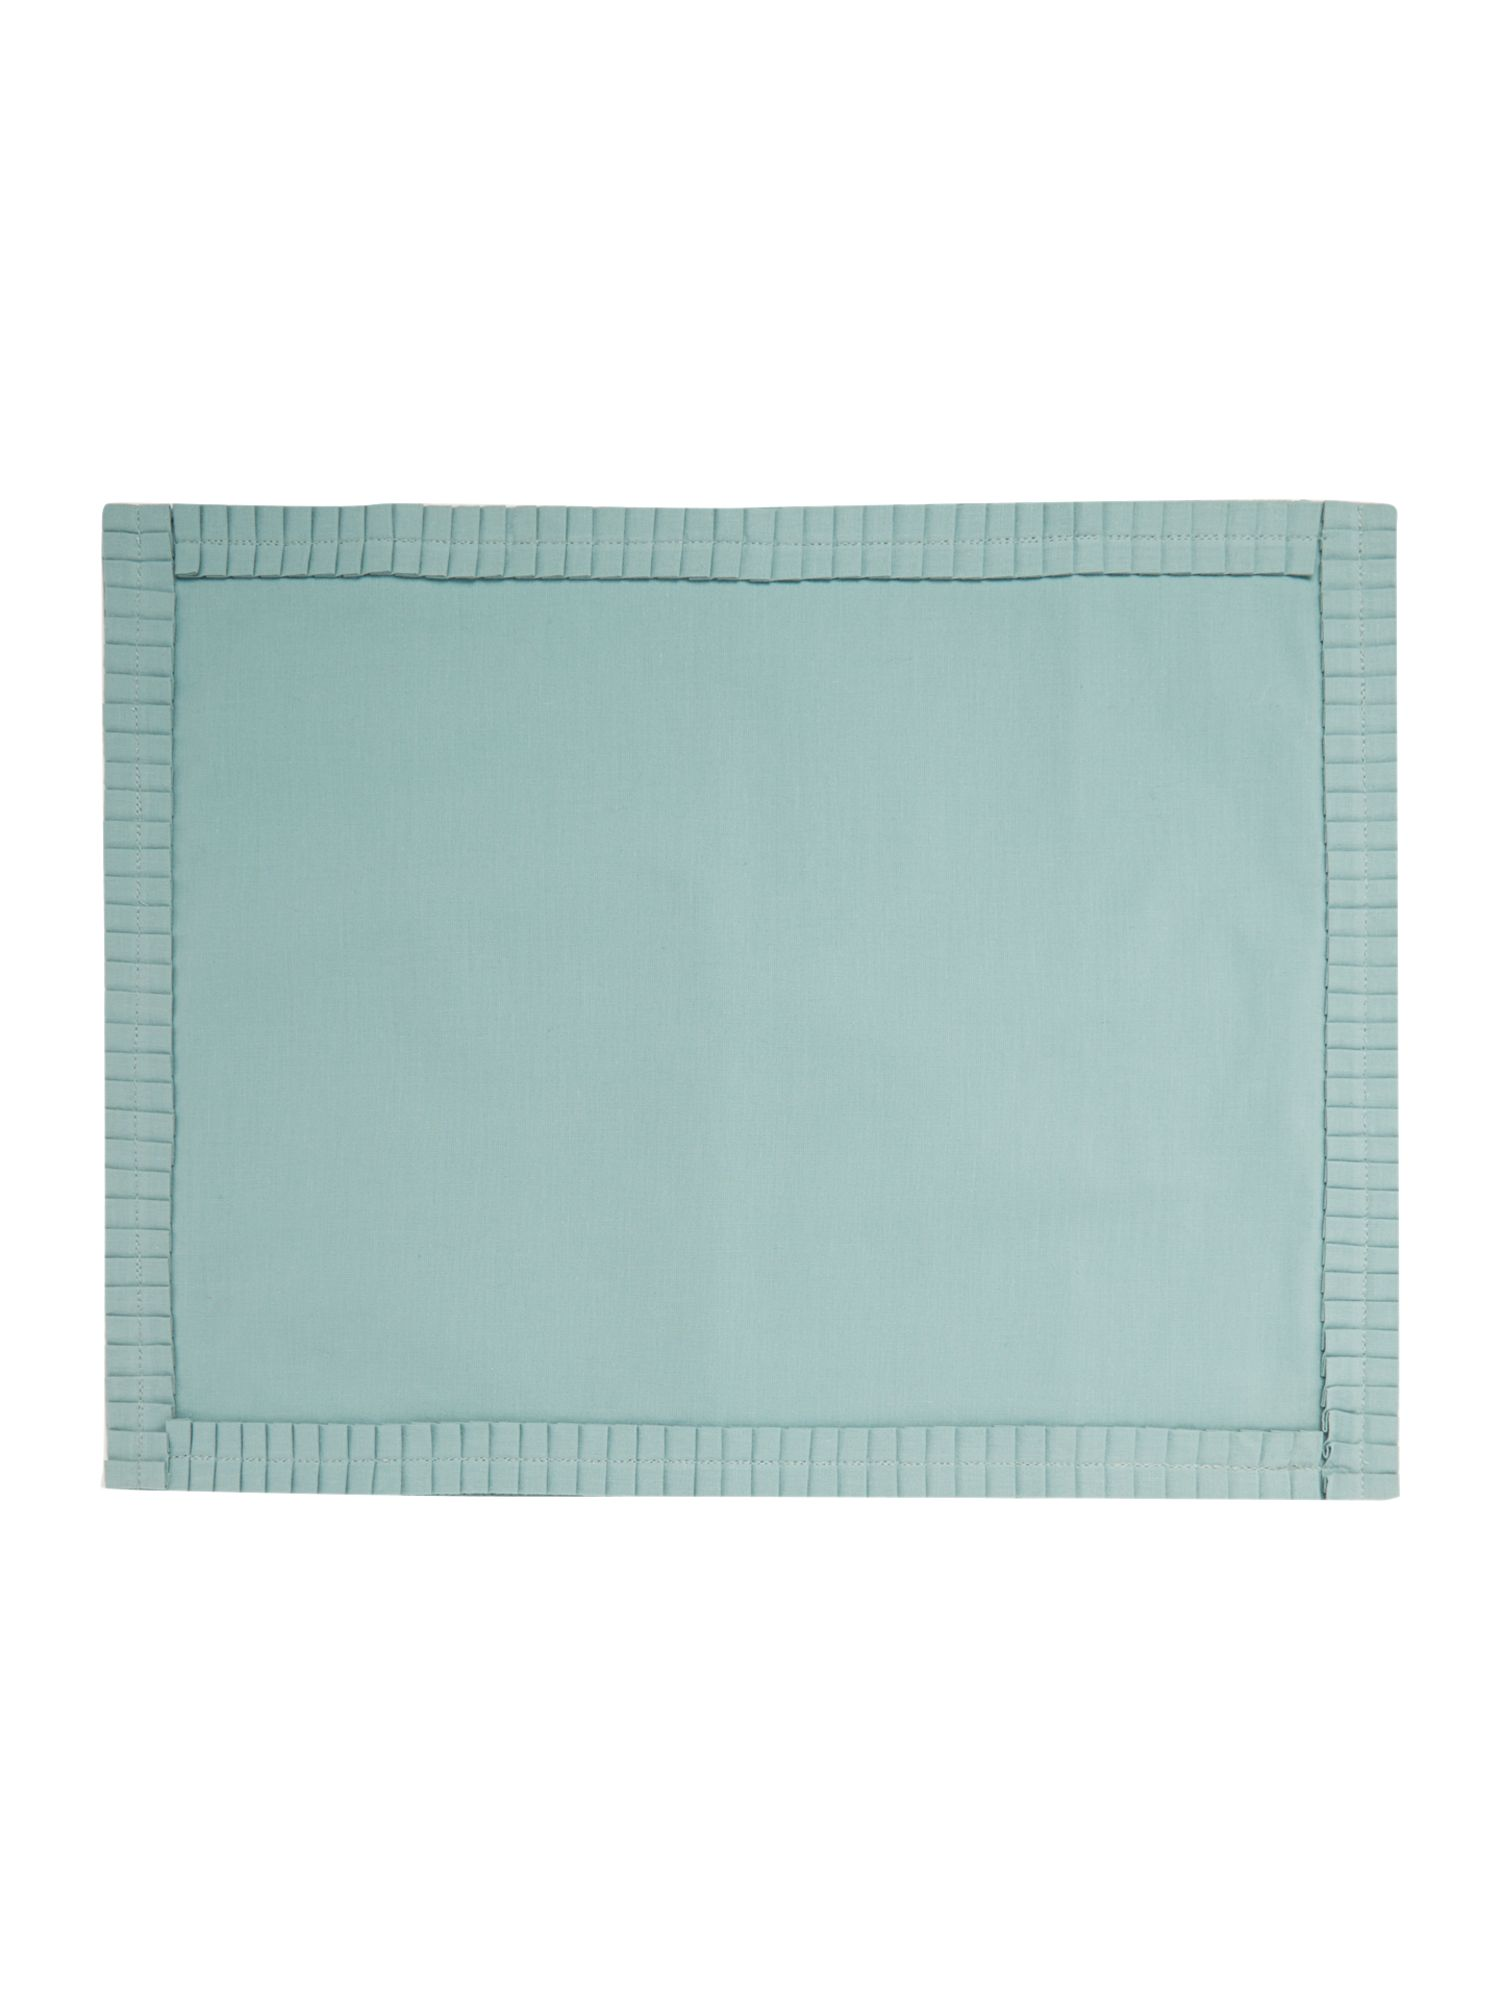 Teal Pleats Tablelinen range